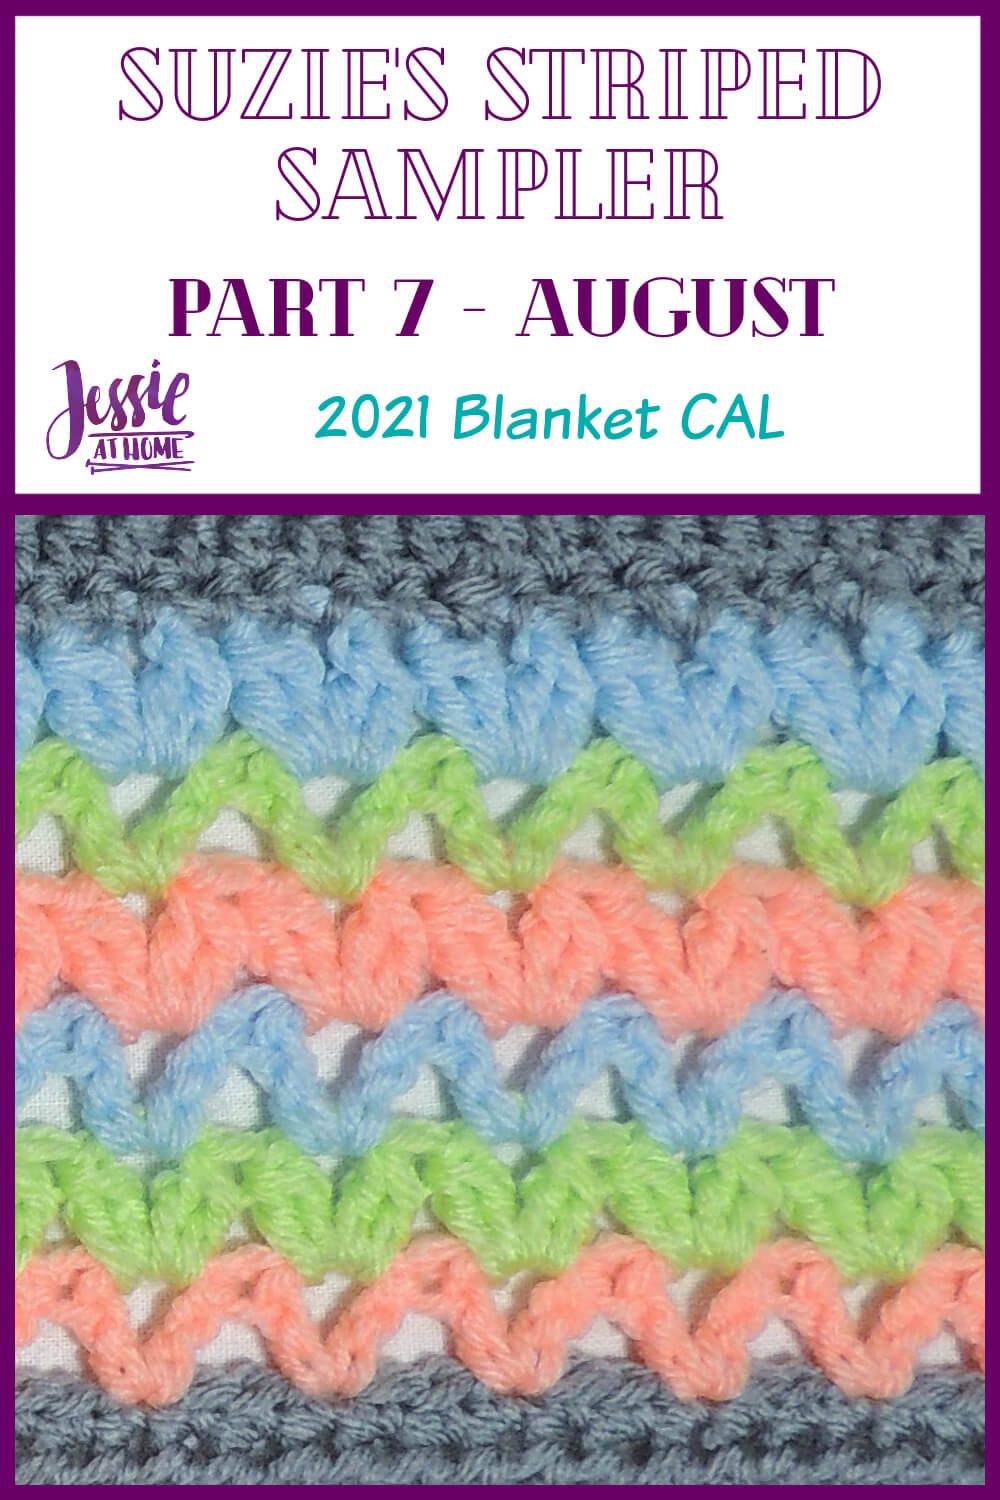 """Vertical rectangle with a purple border and a square image of pink, green, and blue crochet v-stitch pattern with gray on the top and bottom. On the top part is text which reads """"Suzie's Striped Sampler Part 7 - August"""", """"2021 Blanket CAL"""", and """"Jessie At Home."""""""